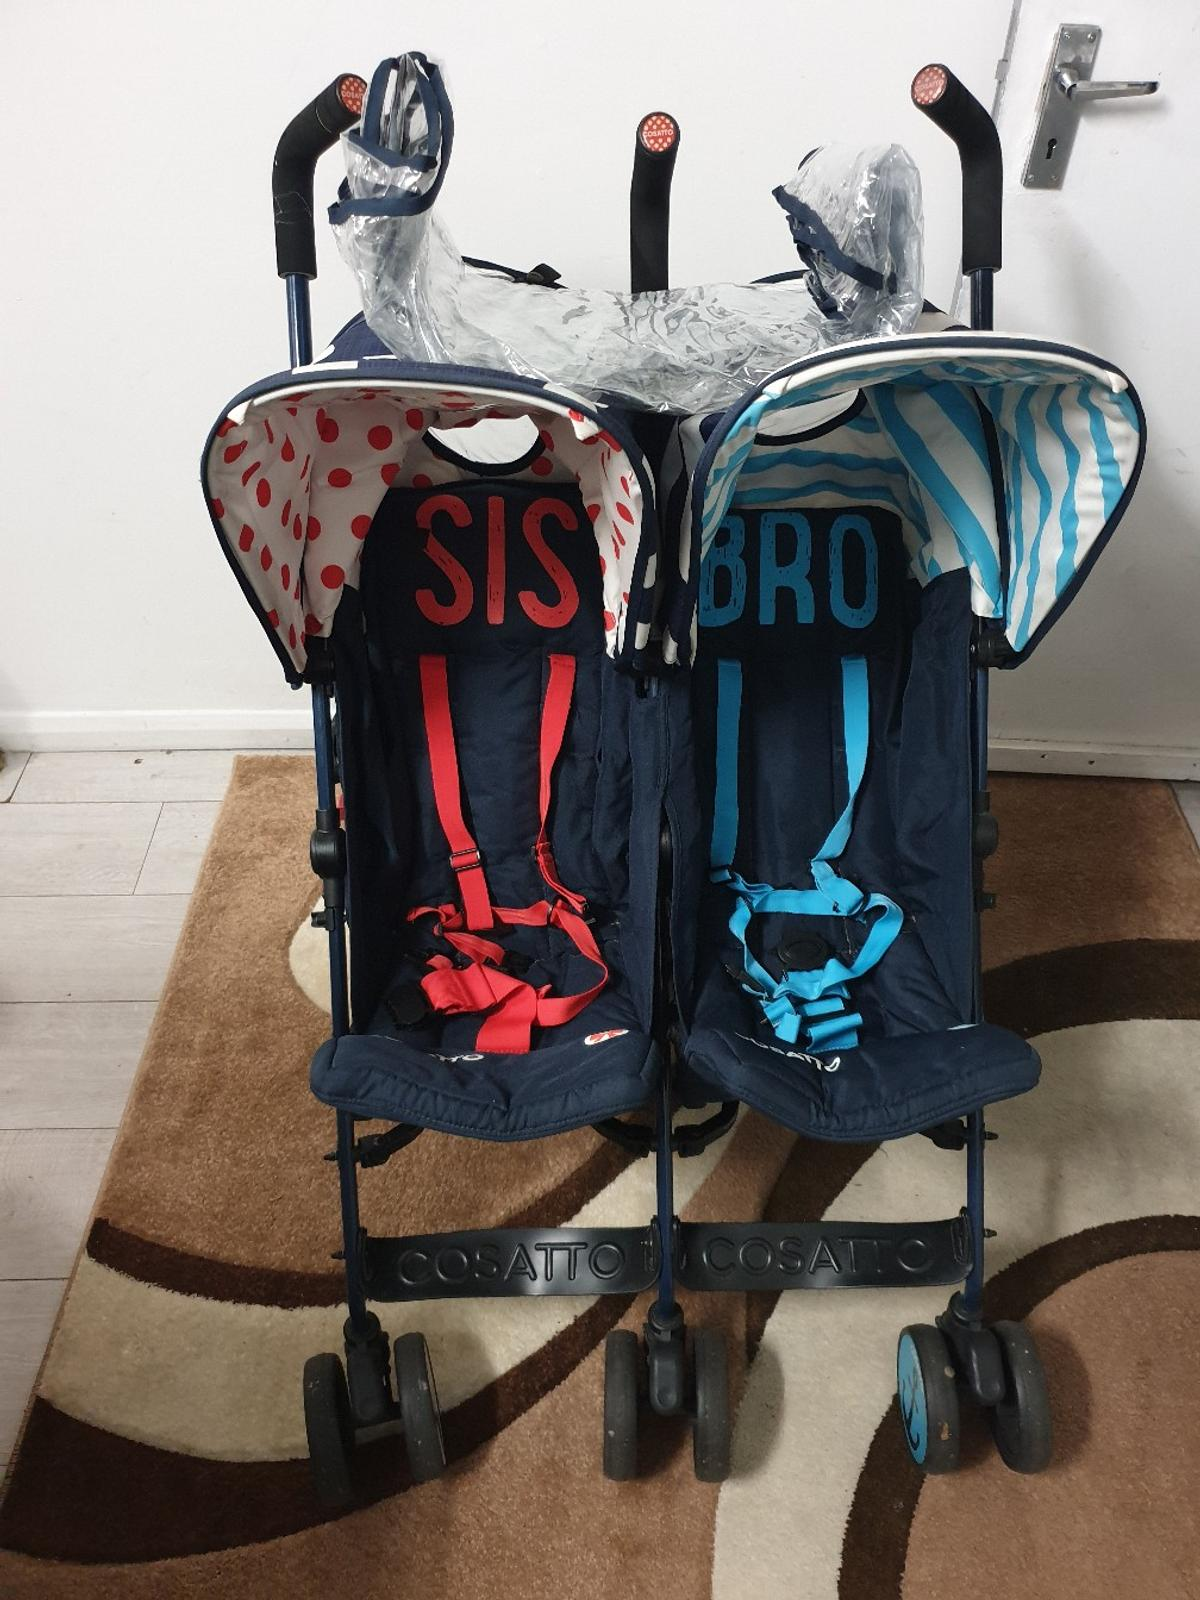 cossatto supa supa twin stroller , sis an bro, suitable from birth to 4 year old